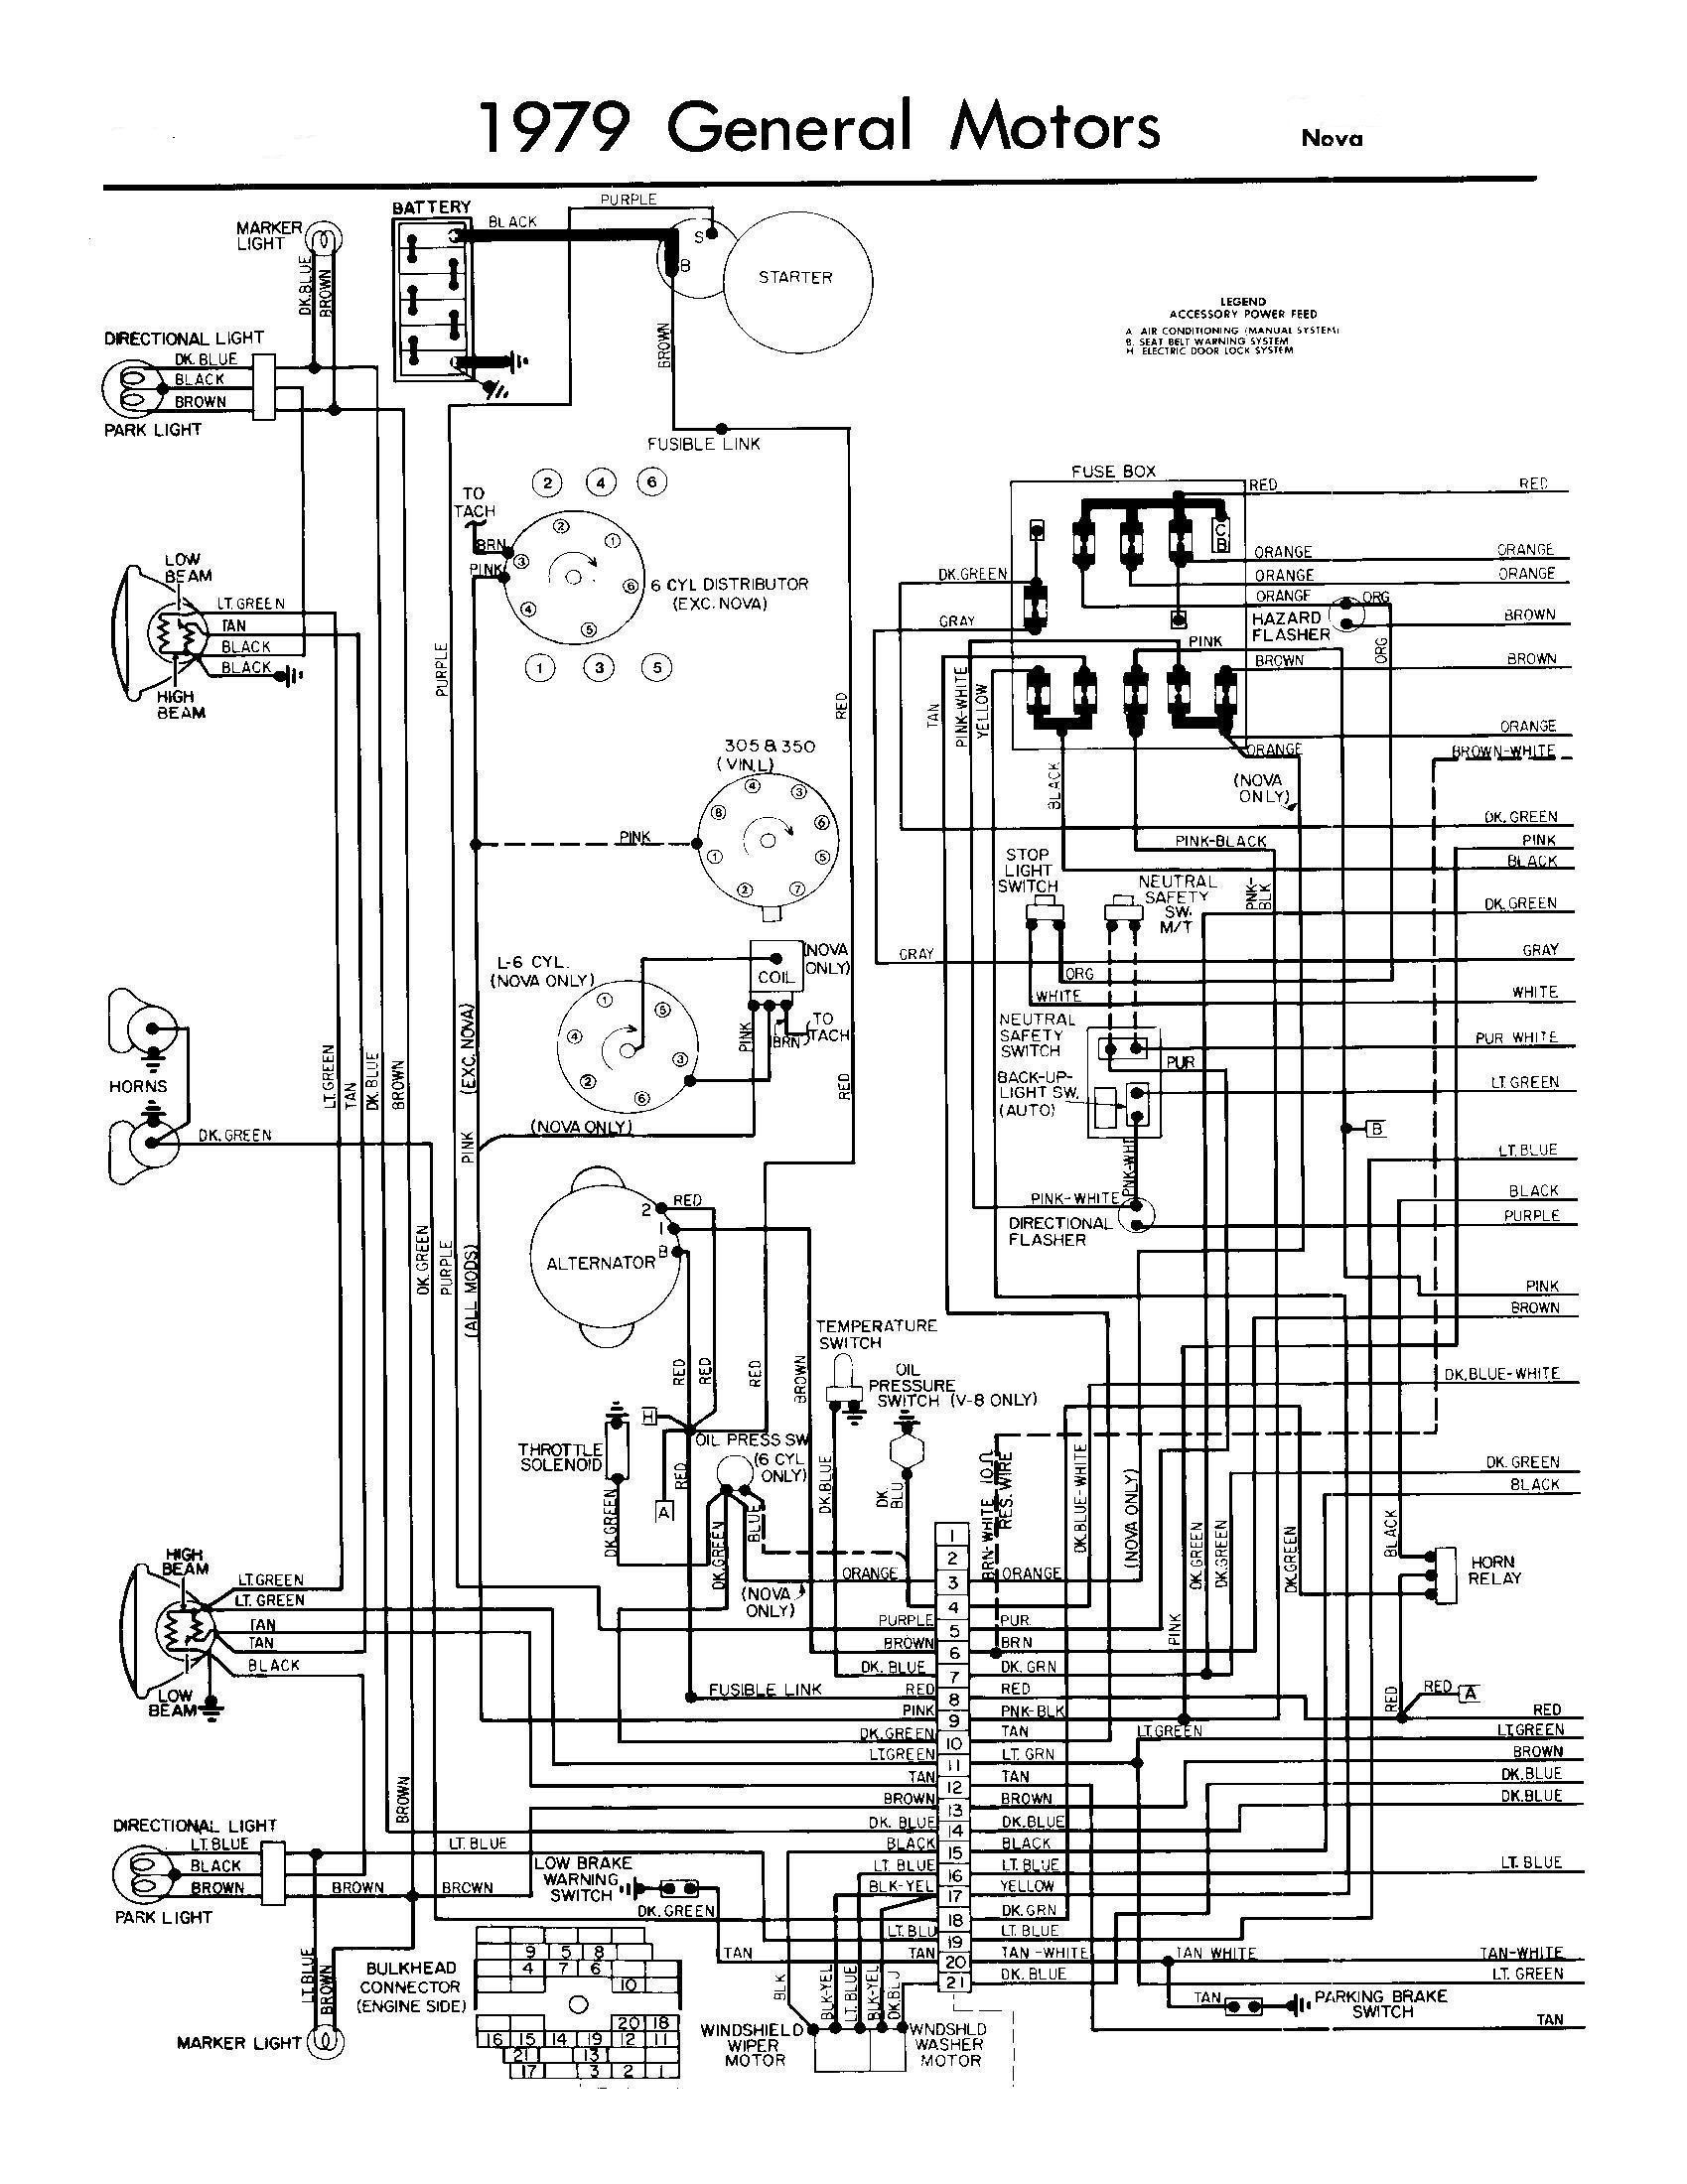 silverado radio wiring diagram on 1970 gmc pickup wiring diagrams rh efluencia co GM Factory Wiring Diagram GM Dash Wiring Diagrams